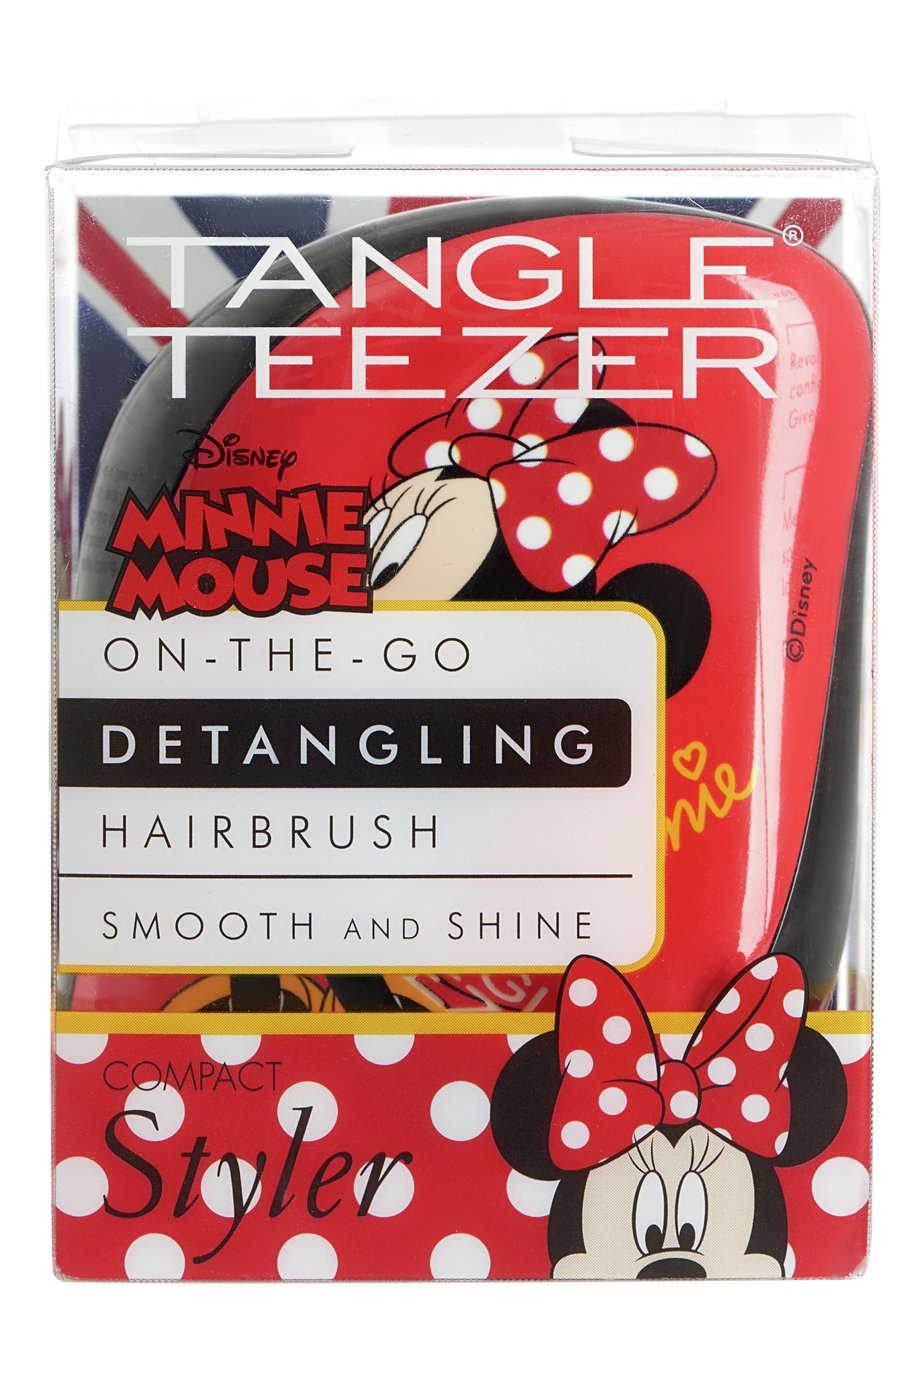 Tangle Teezer Minnie Mouse Compact Styler